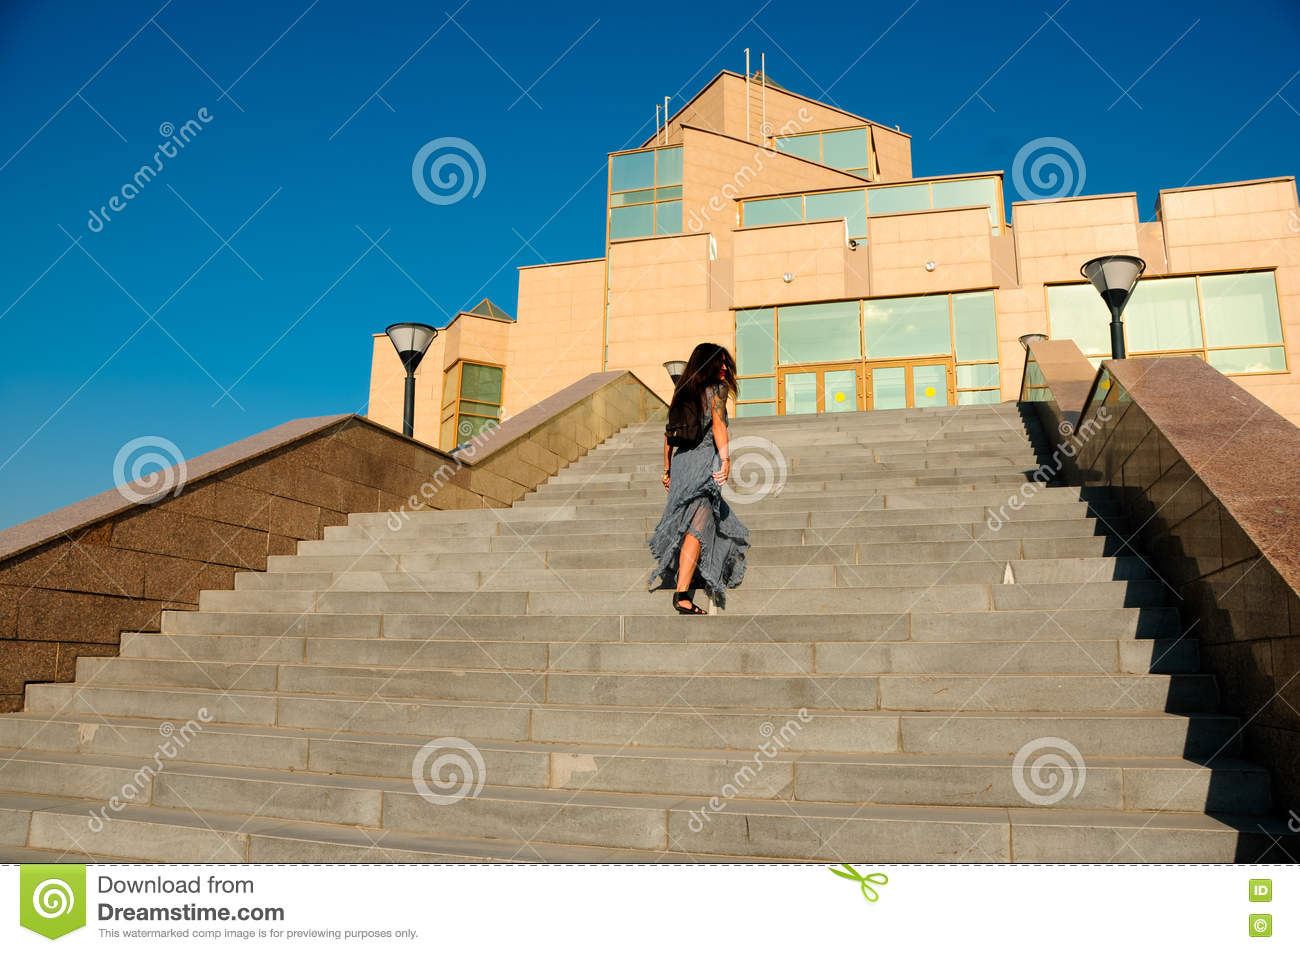 Woman On A City Street Climbs The Stairs Stock Image